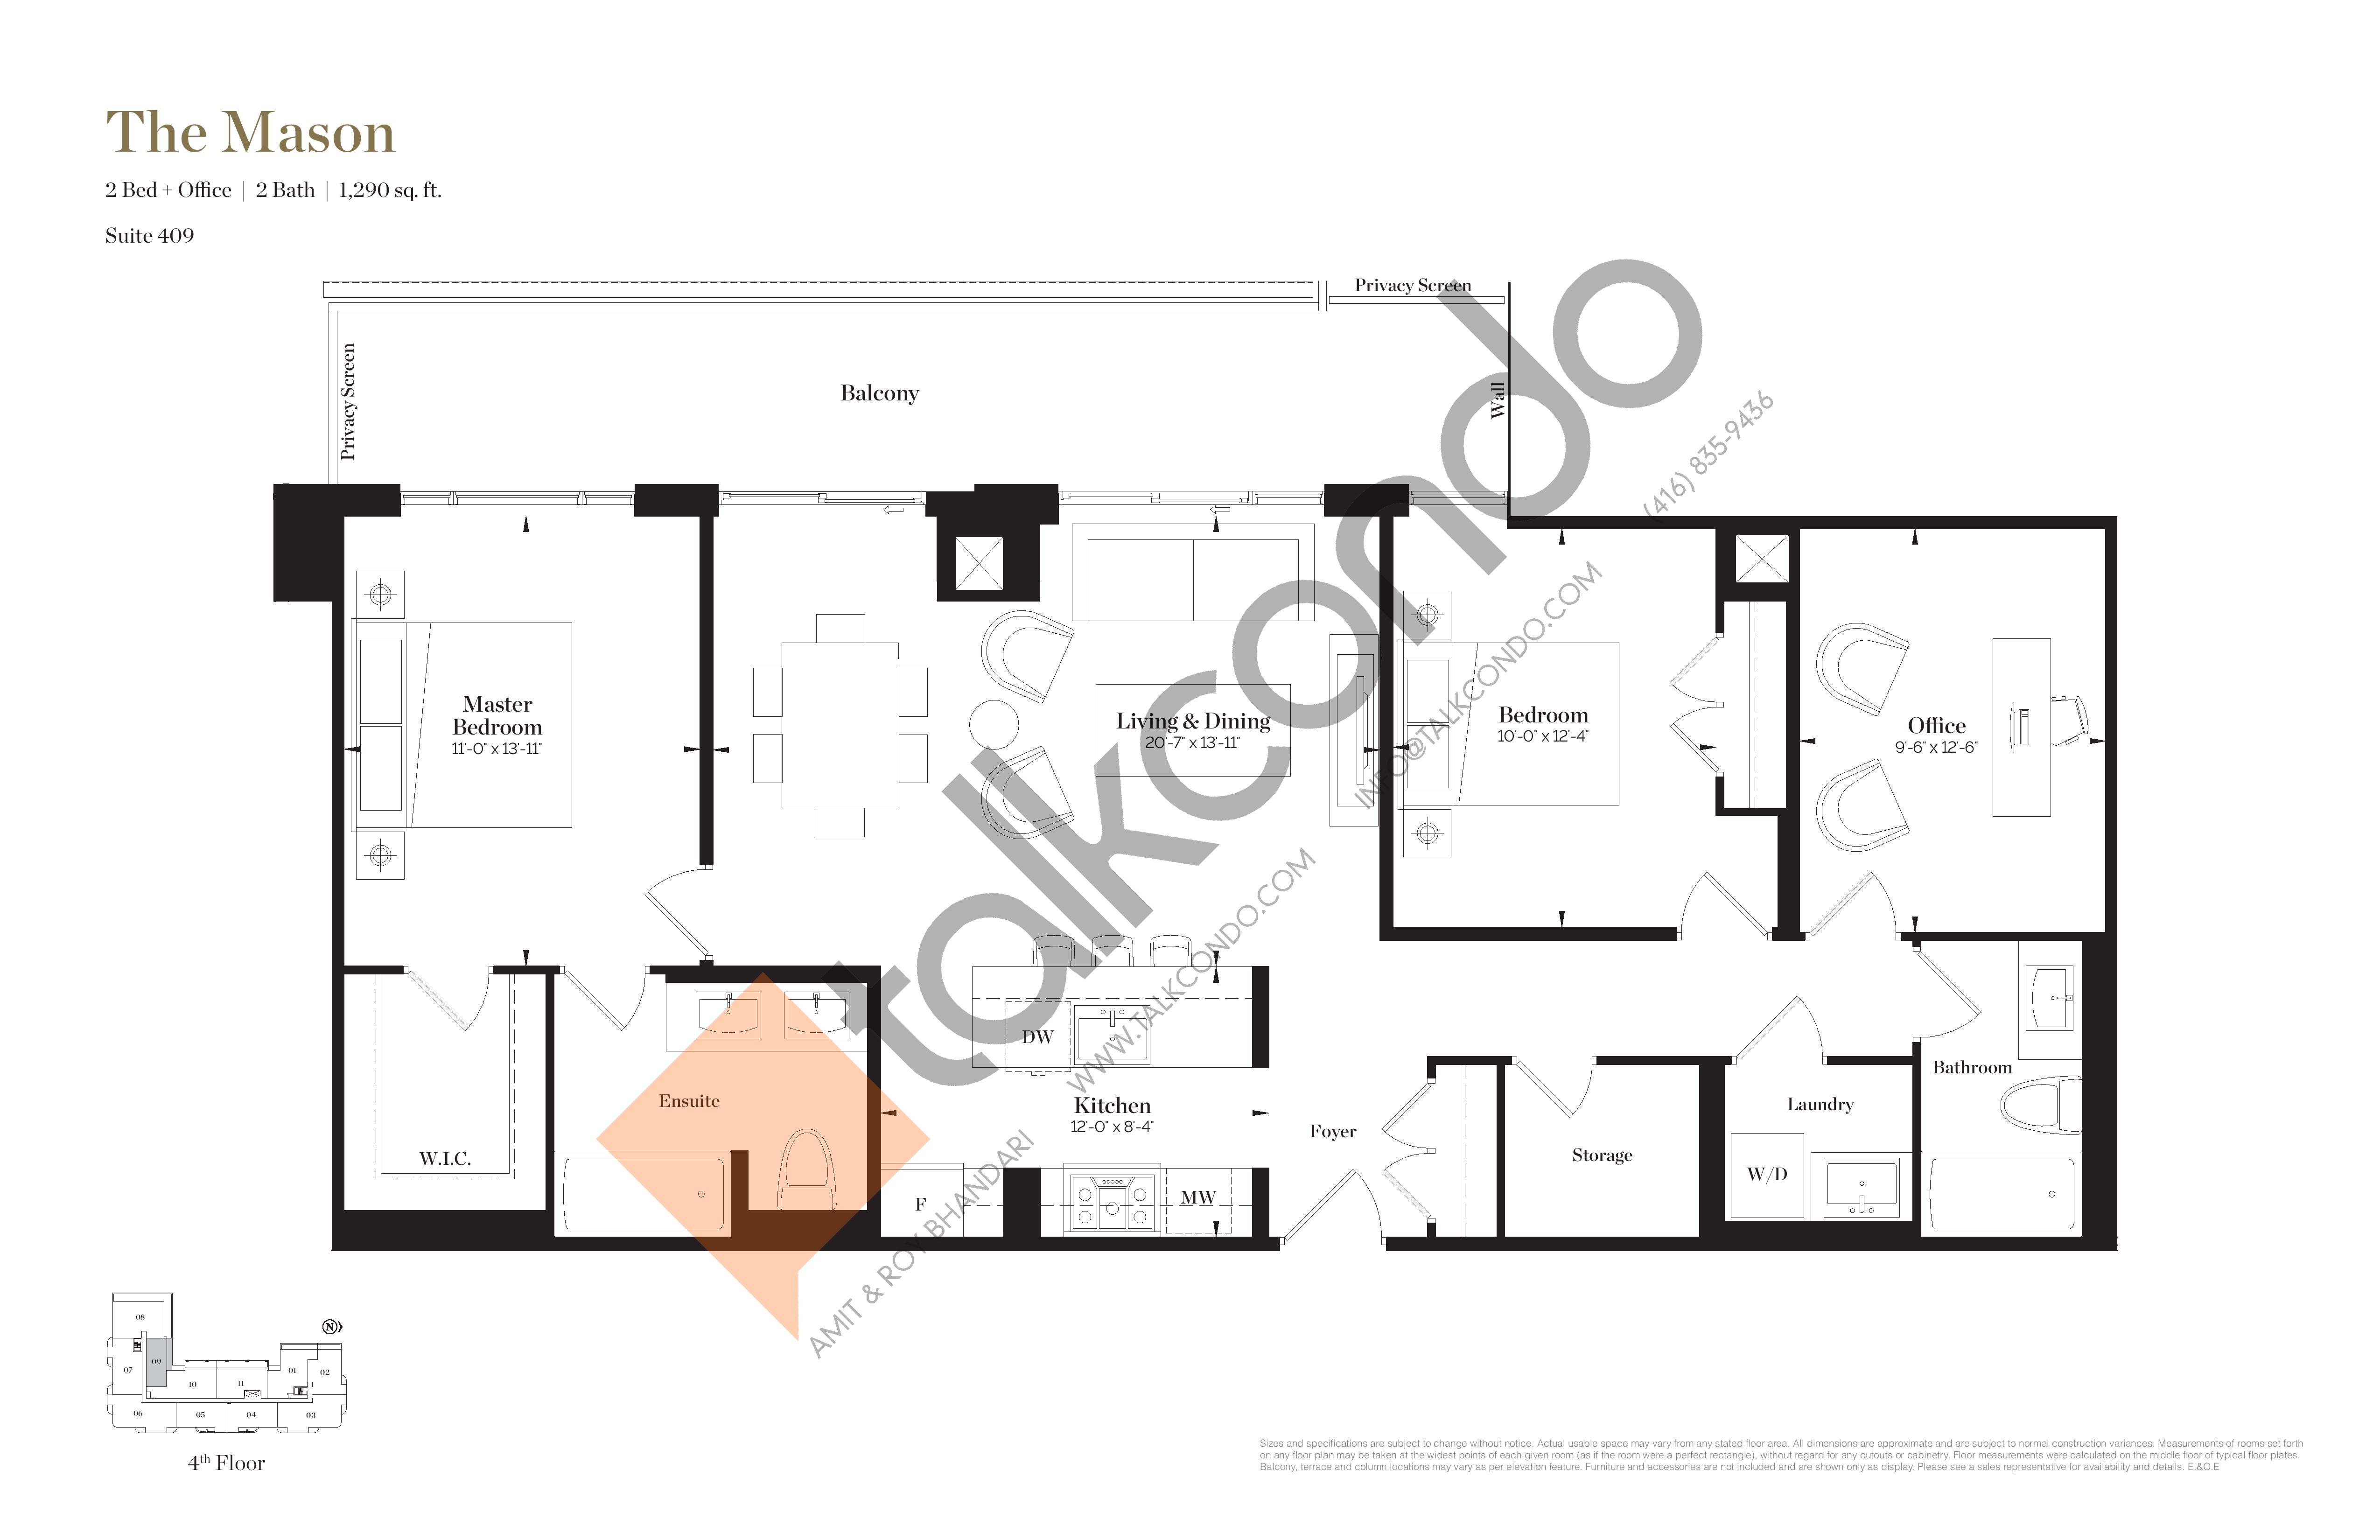 The Mason Floor Plan at Empire Maven Condos - 1290 sq.ft